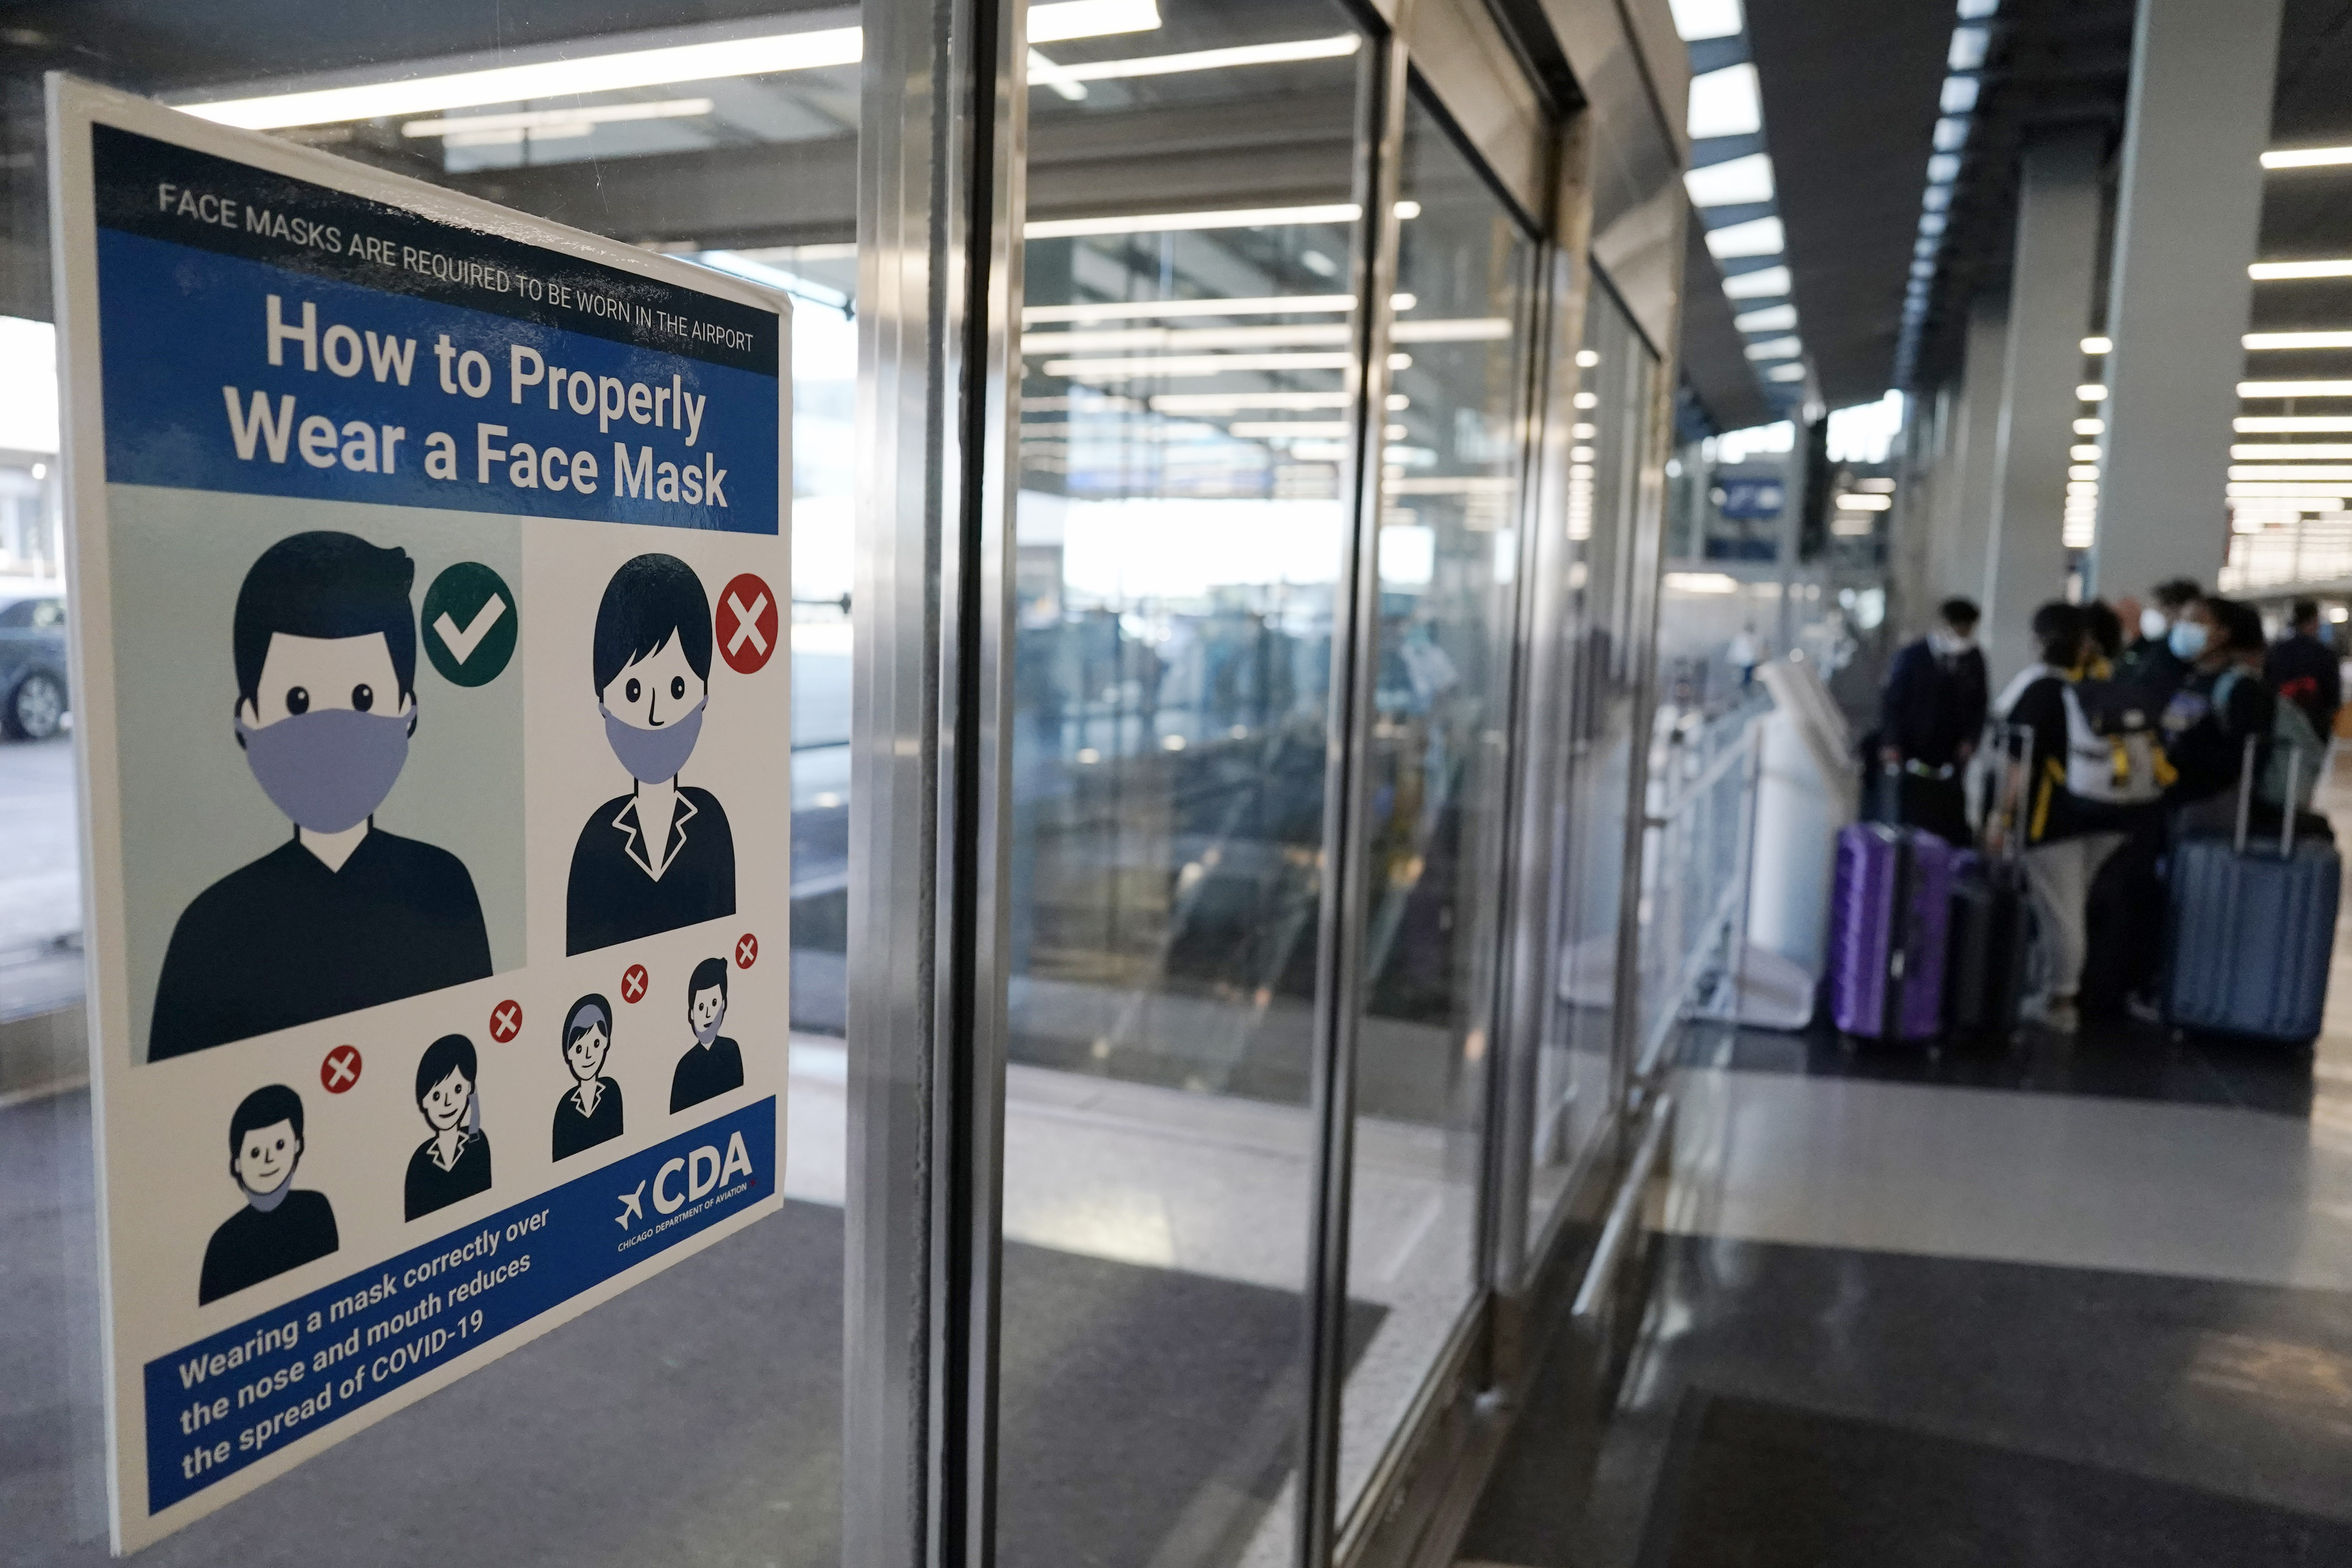 Face coverings are required at O'Hare airport in Chicago.